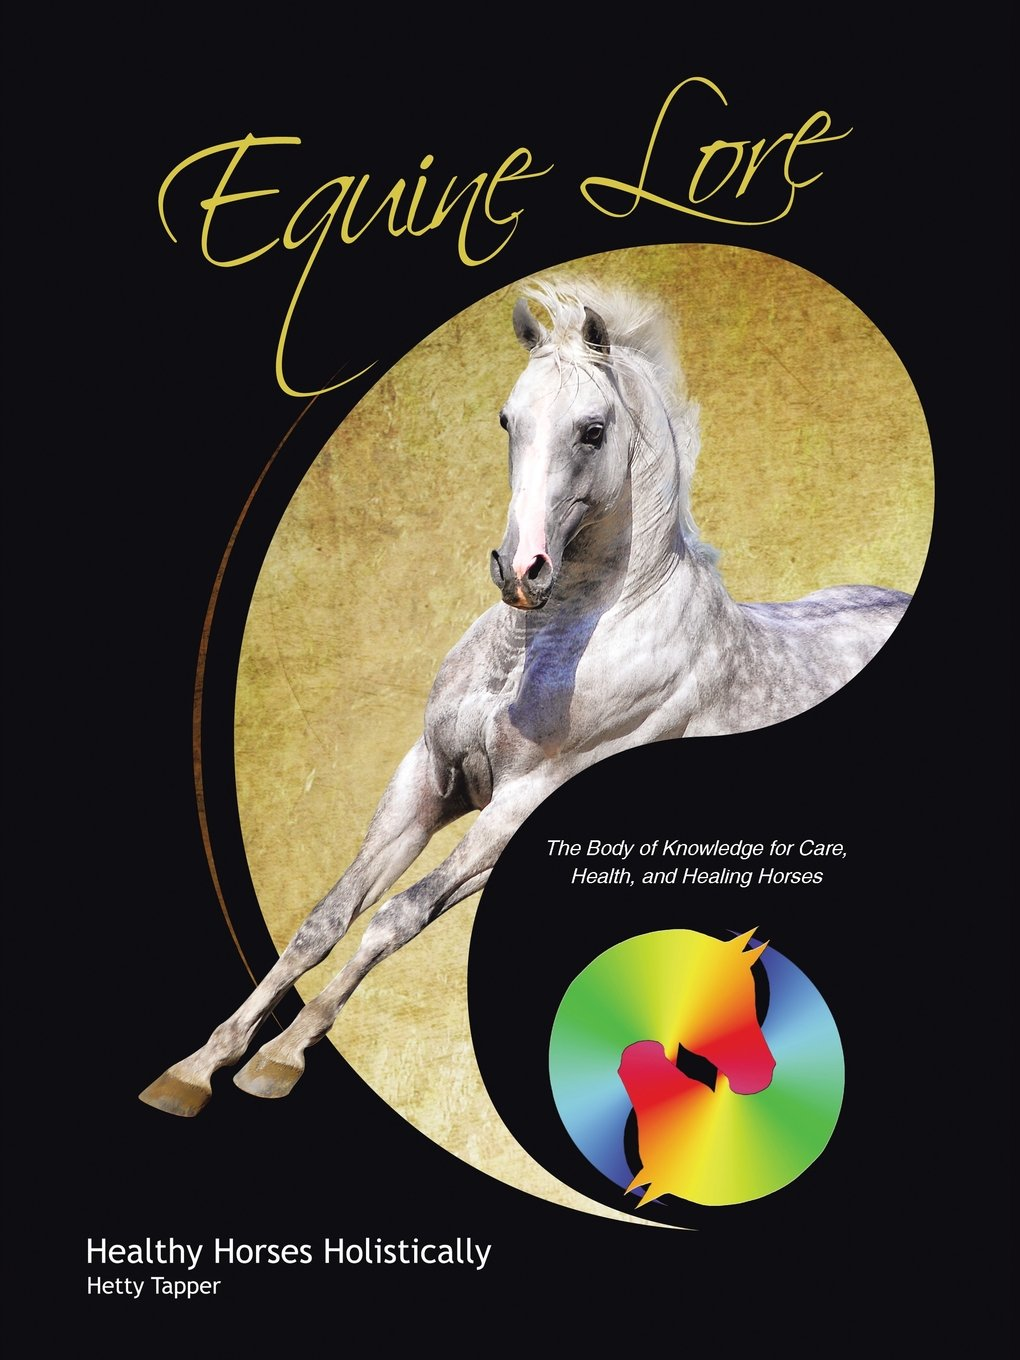 Equine Lore Healthy Horses Holistically: The Body of Knowledge for Care, Health, and Healing Horses